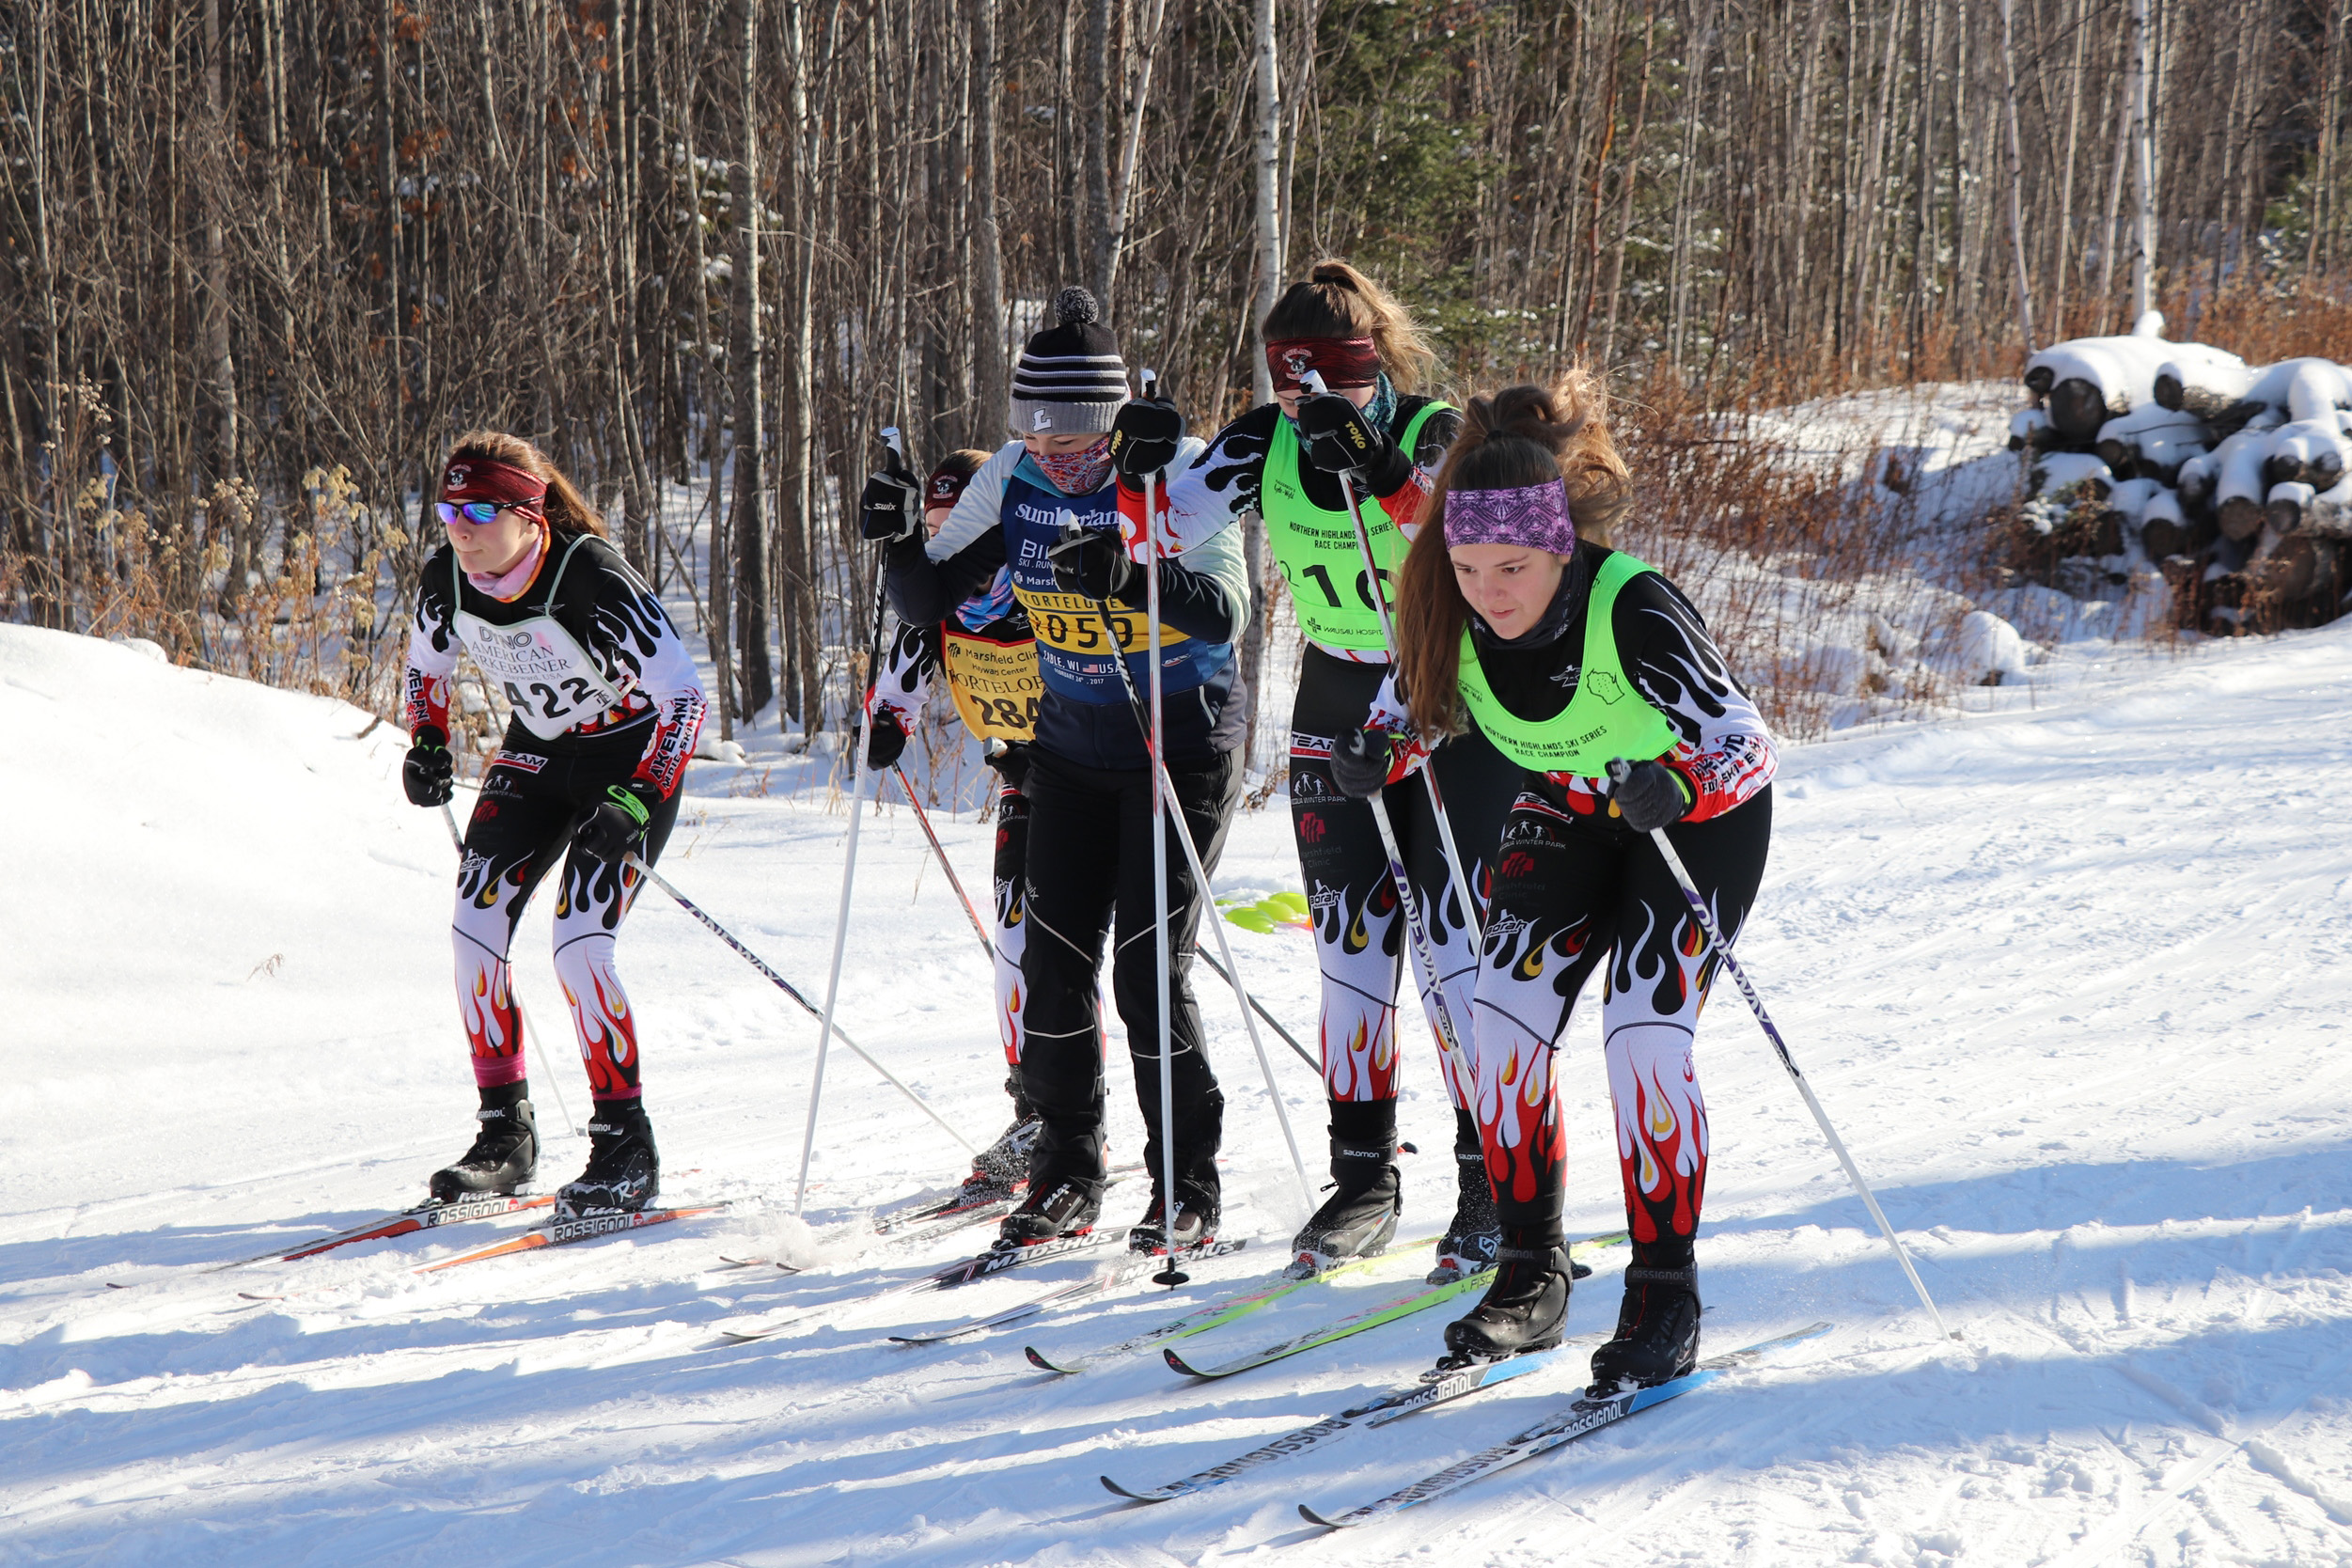 Girls from the Lakeland Nordic ski team have a practice race on the WinMan Trails, Manitowish Waters. Kim Johnson photo